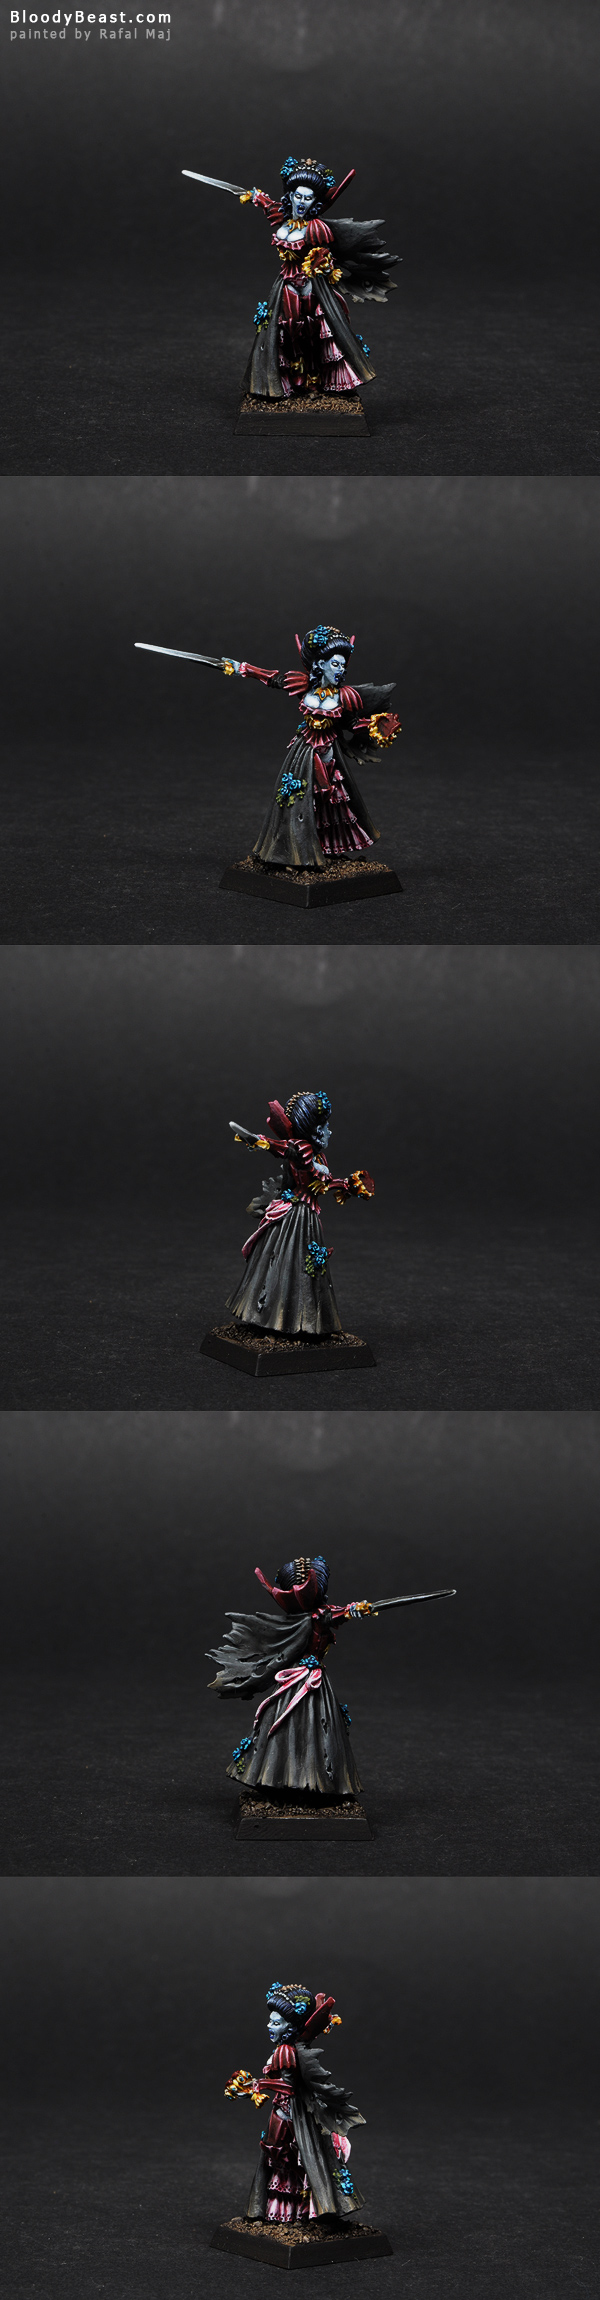 Vampire Counts Isabella Von Carstein painted by Rafal Maj (BloodyBeast.com)